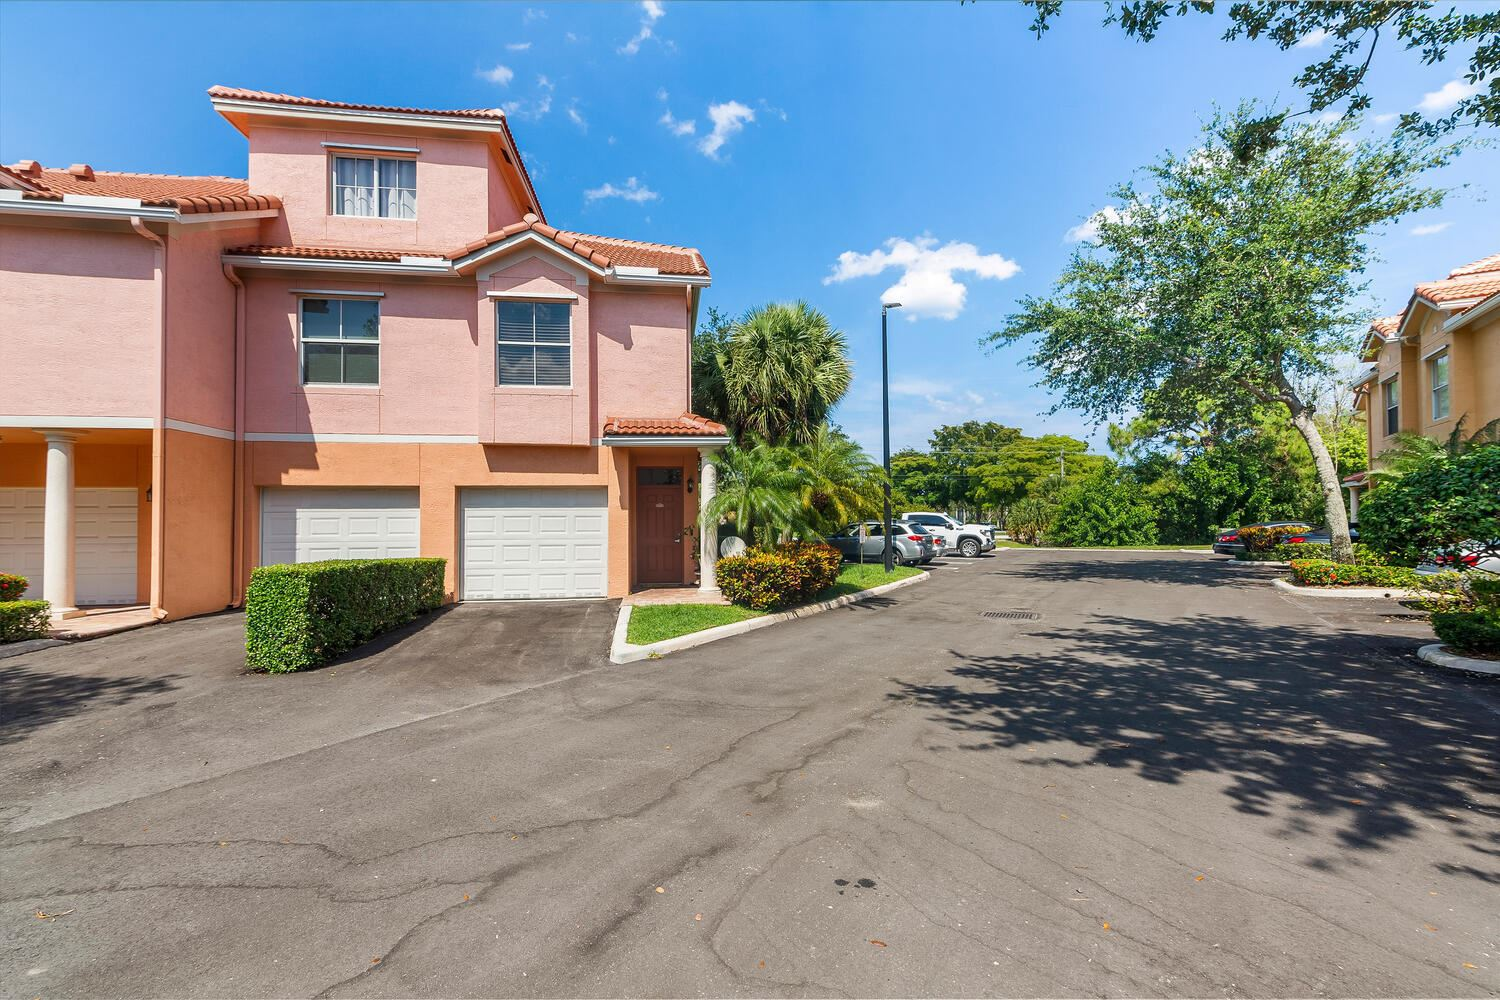 2018 Alta Meadows Lane #409, Delray Beach, FL 33444 - MLS#: RX-10709386